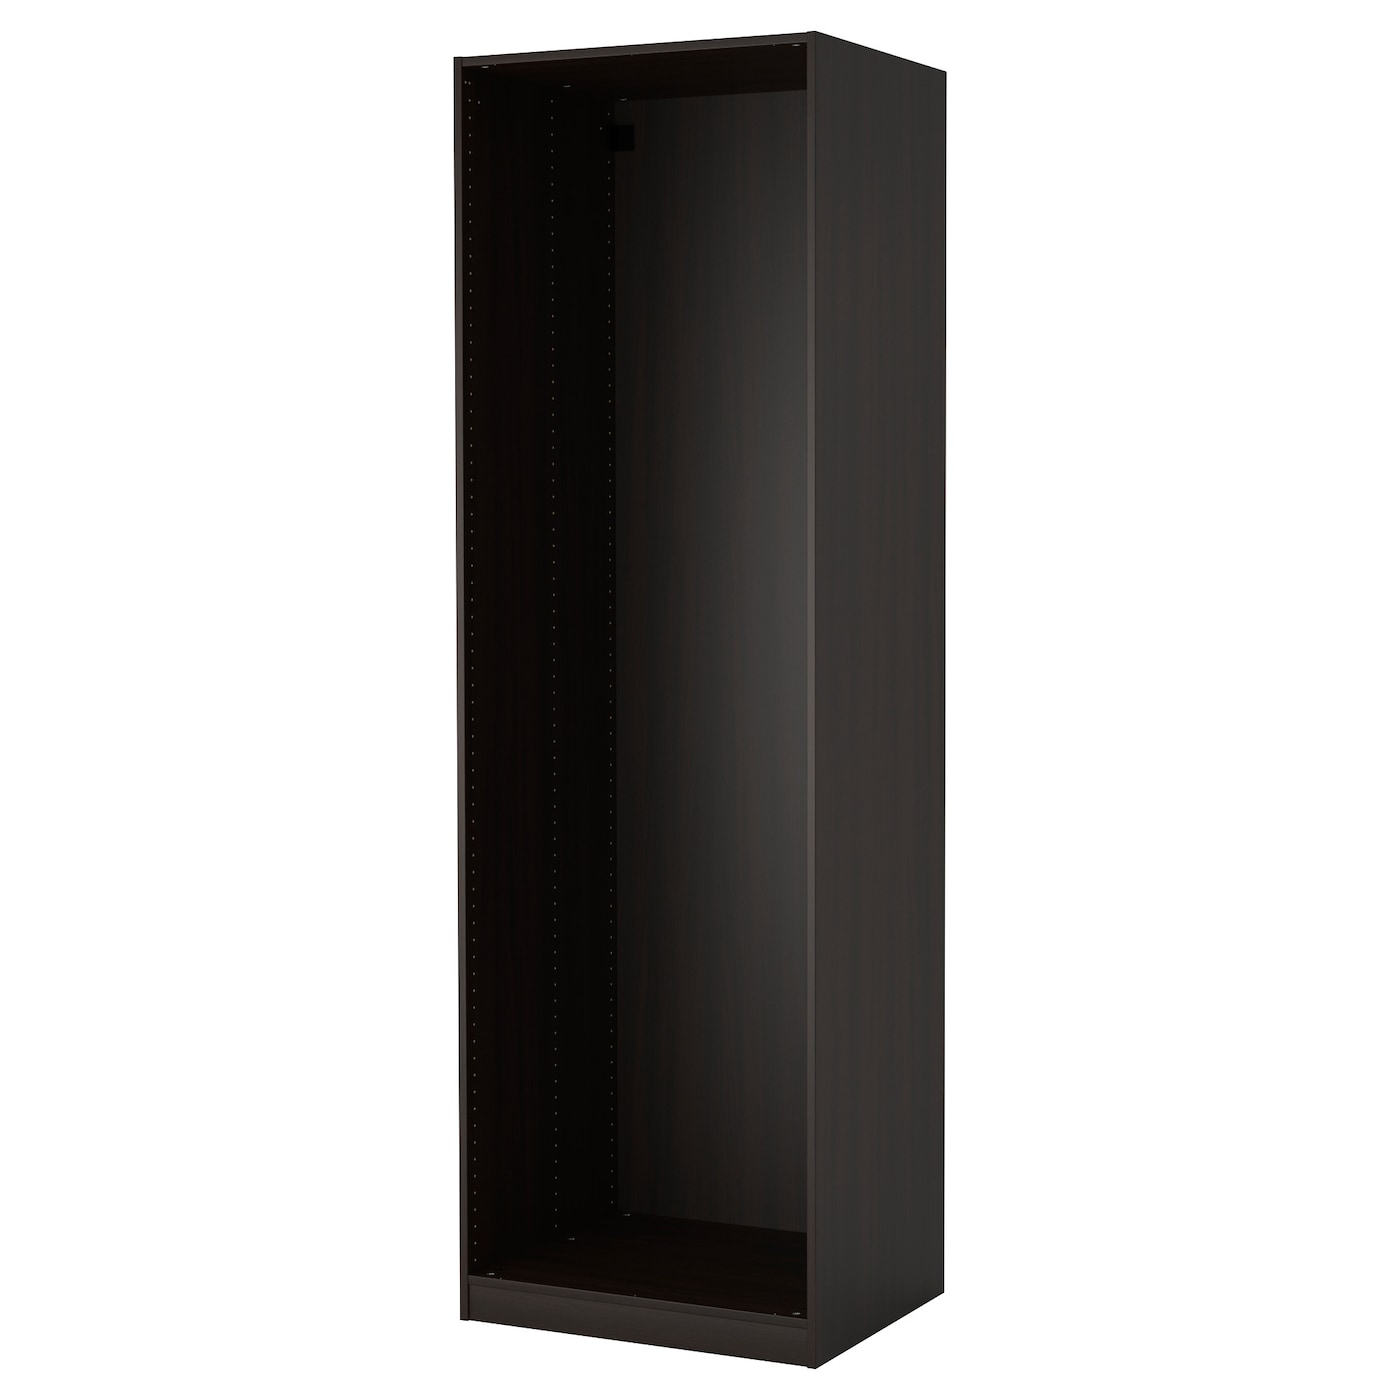 pax wardrobe frame 75 x 58 x 236 cm ikea. Black Bedroom Furniture Sets. Home Design Ideas